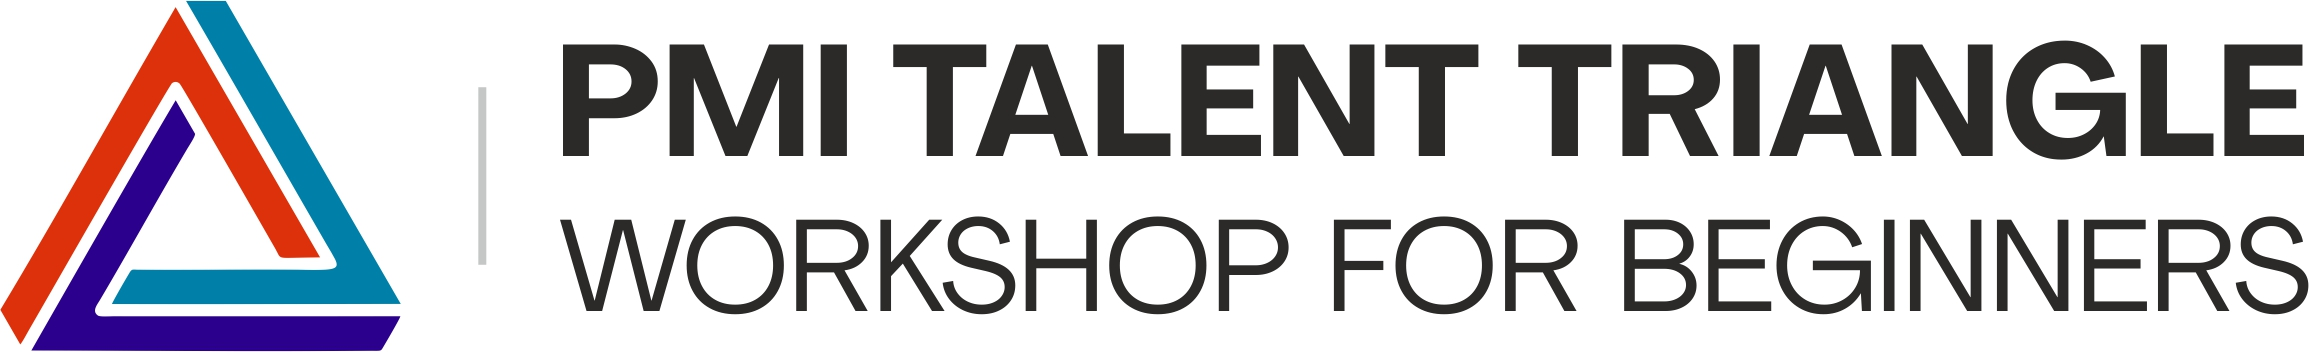 Talent Triangle Workshops for Beginners